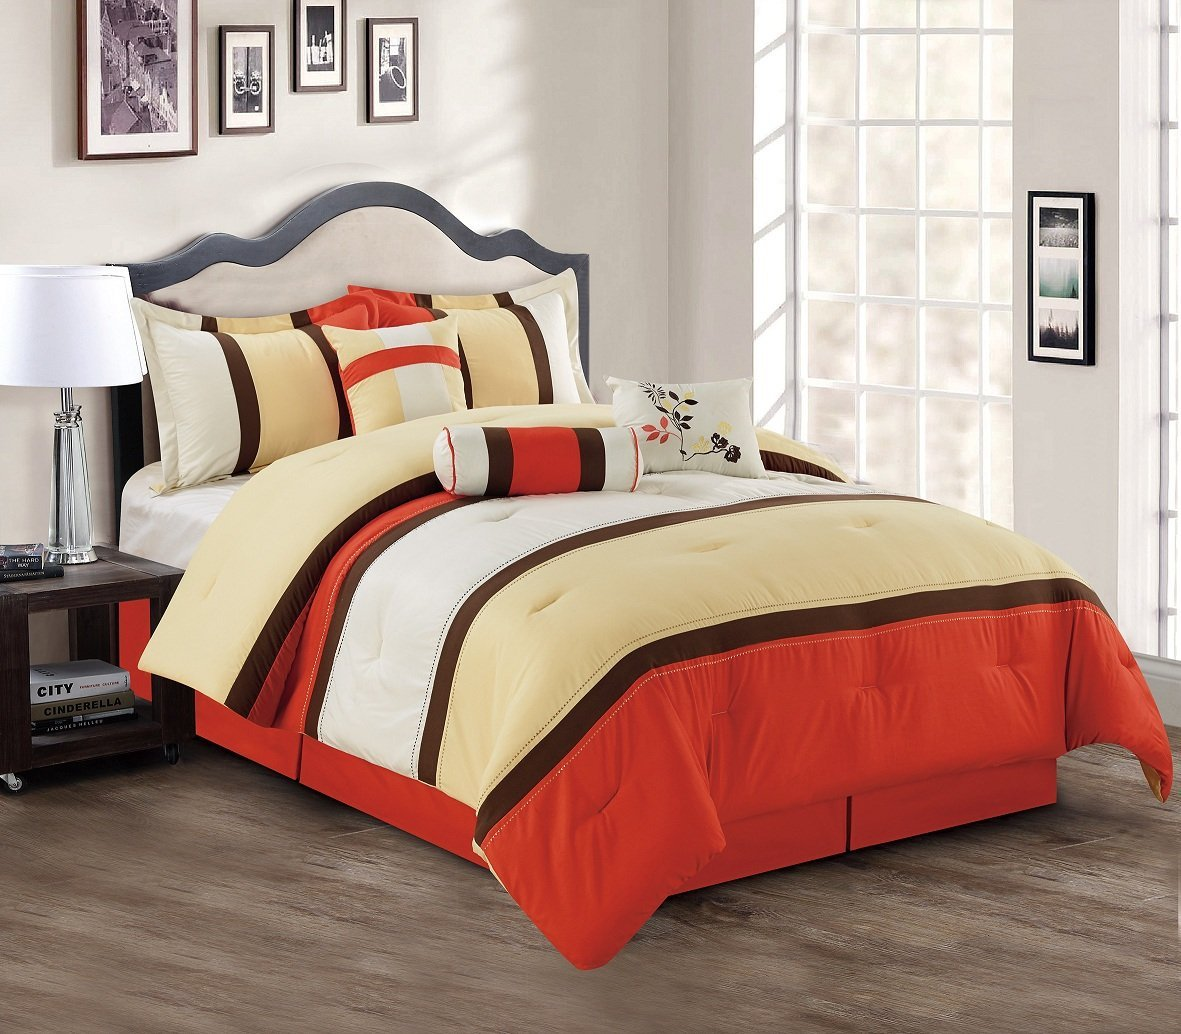 azul and itm grey ebay set pieza regal comforter blanco de naranja white piece conjunto orange blue